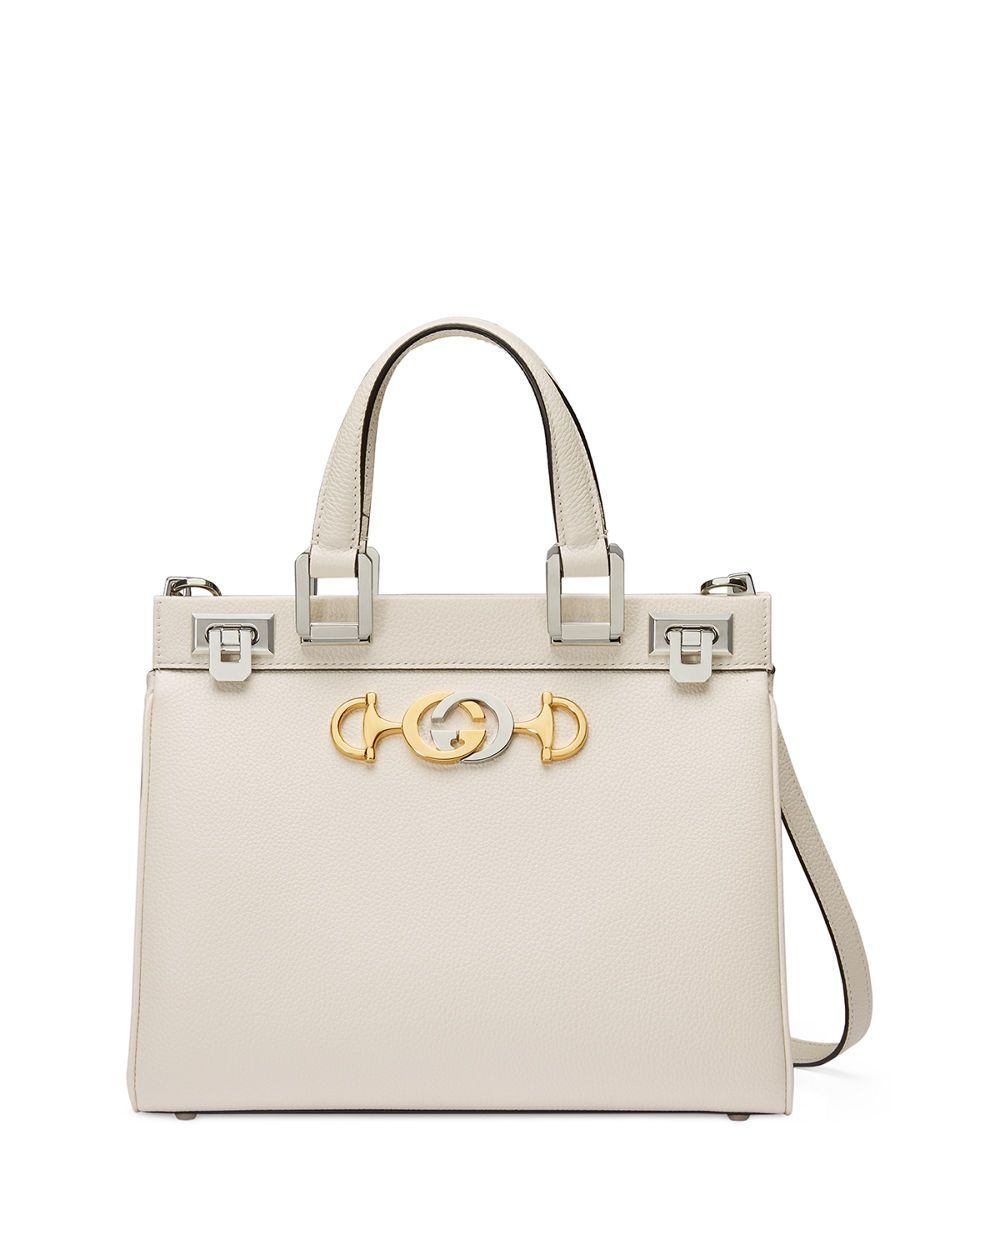 67999fbb63d Best Spring 2019 Bags - Spring 2019 Bags to Buy Now